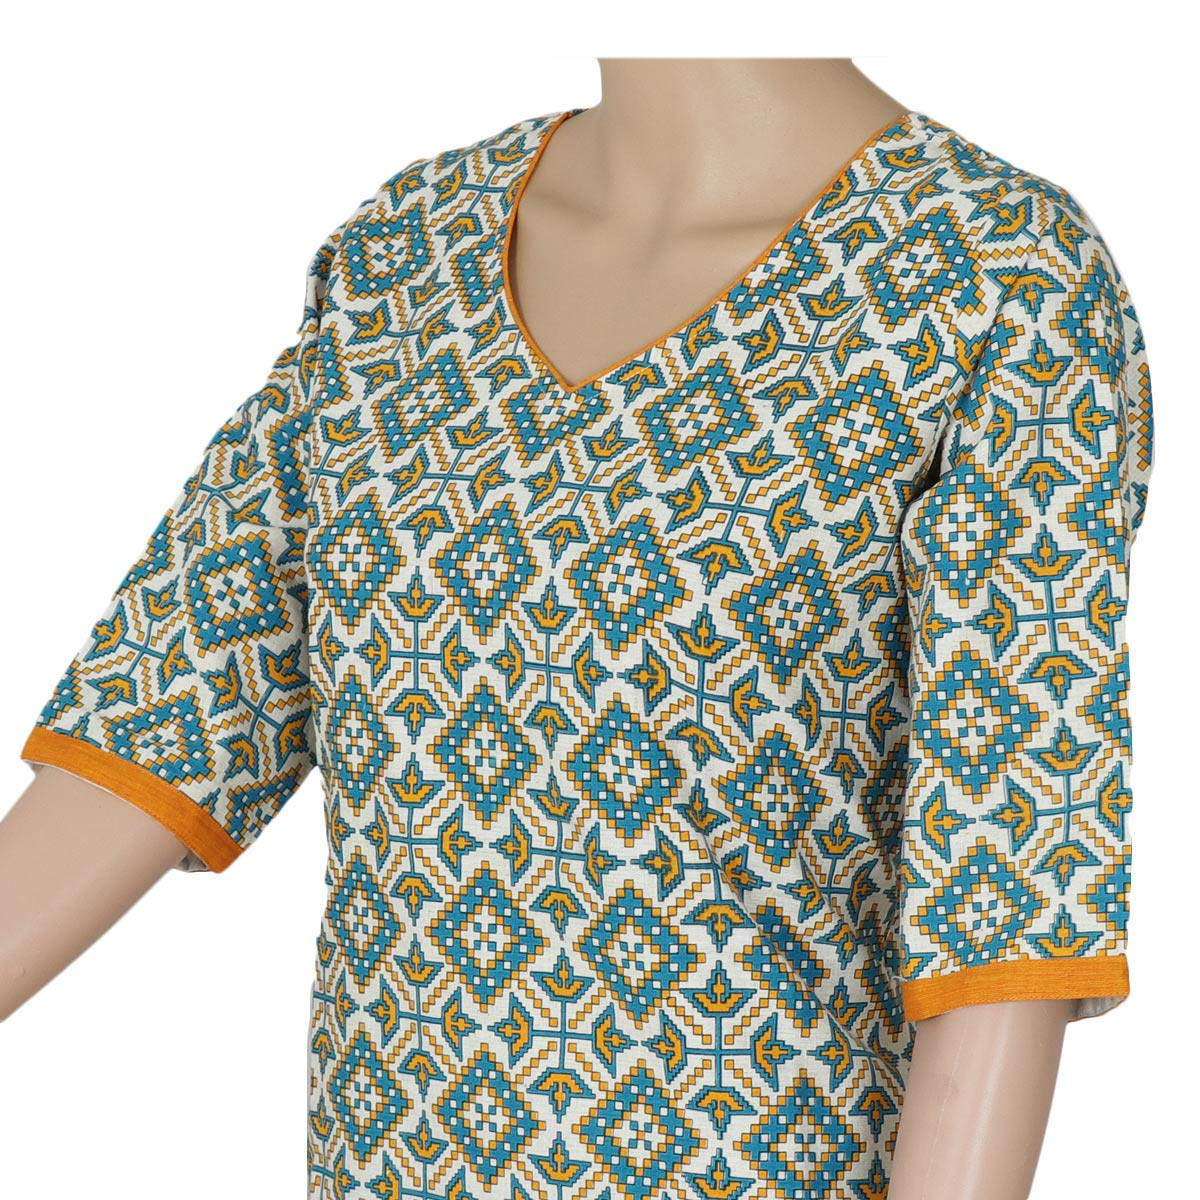 Cotton Kurta Beige and Light Blue with ikkat design